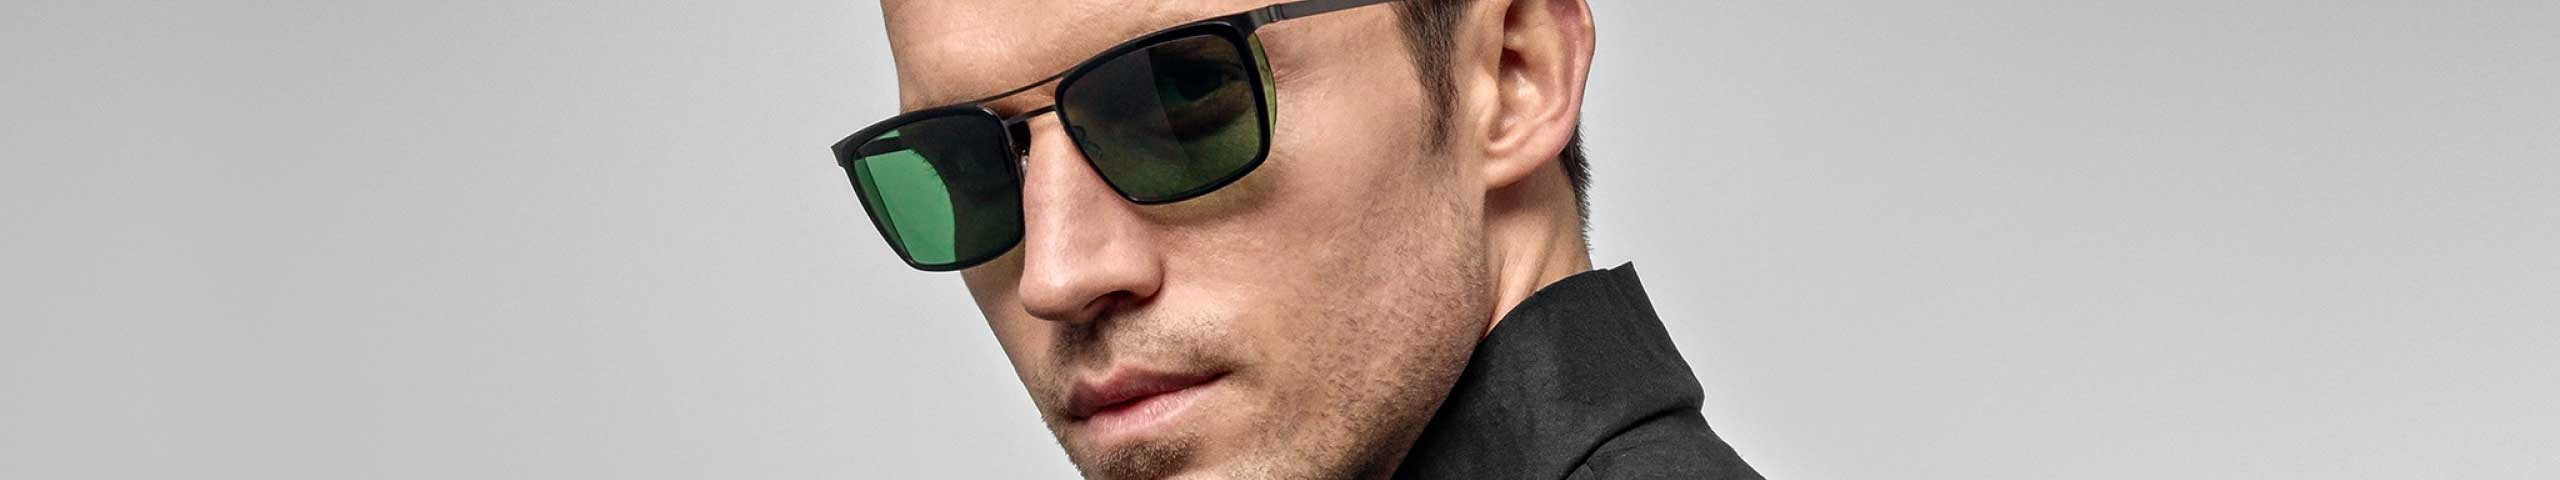 Lindberg sunglasses.